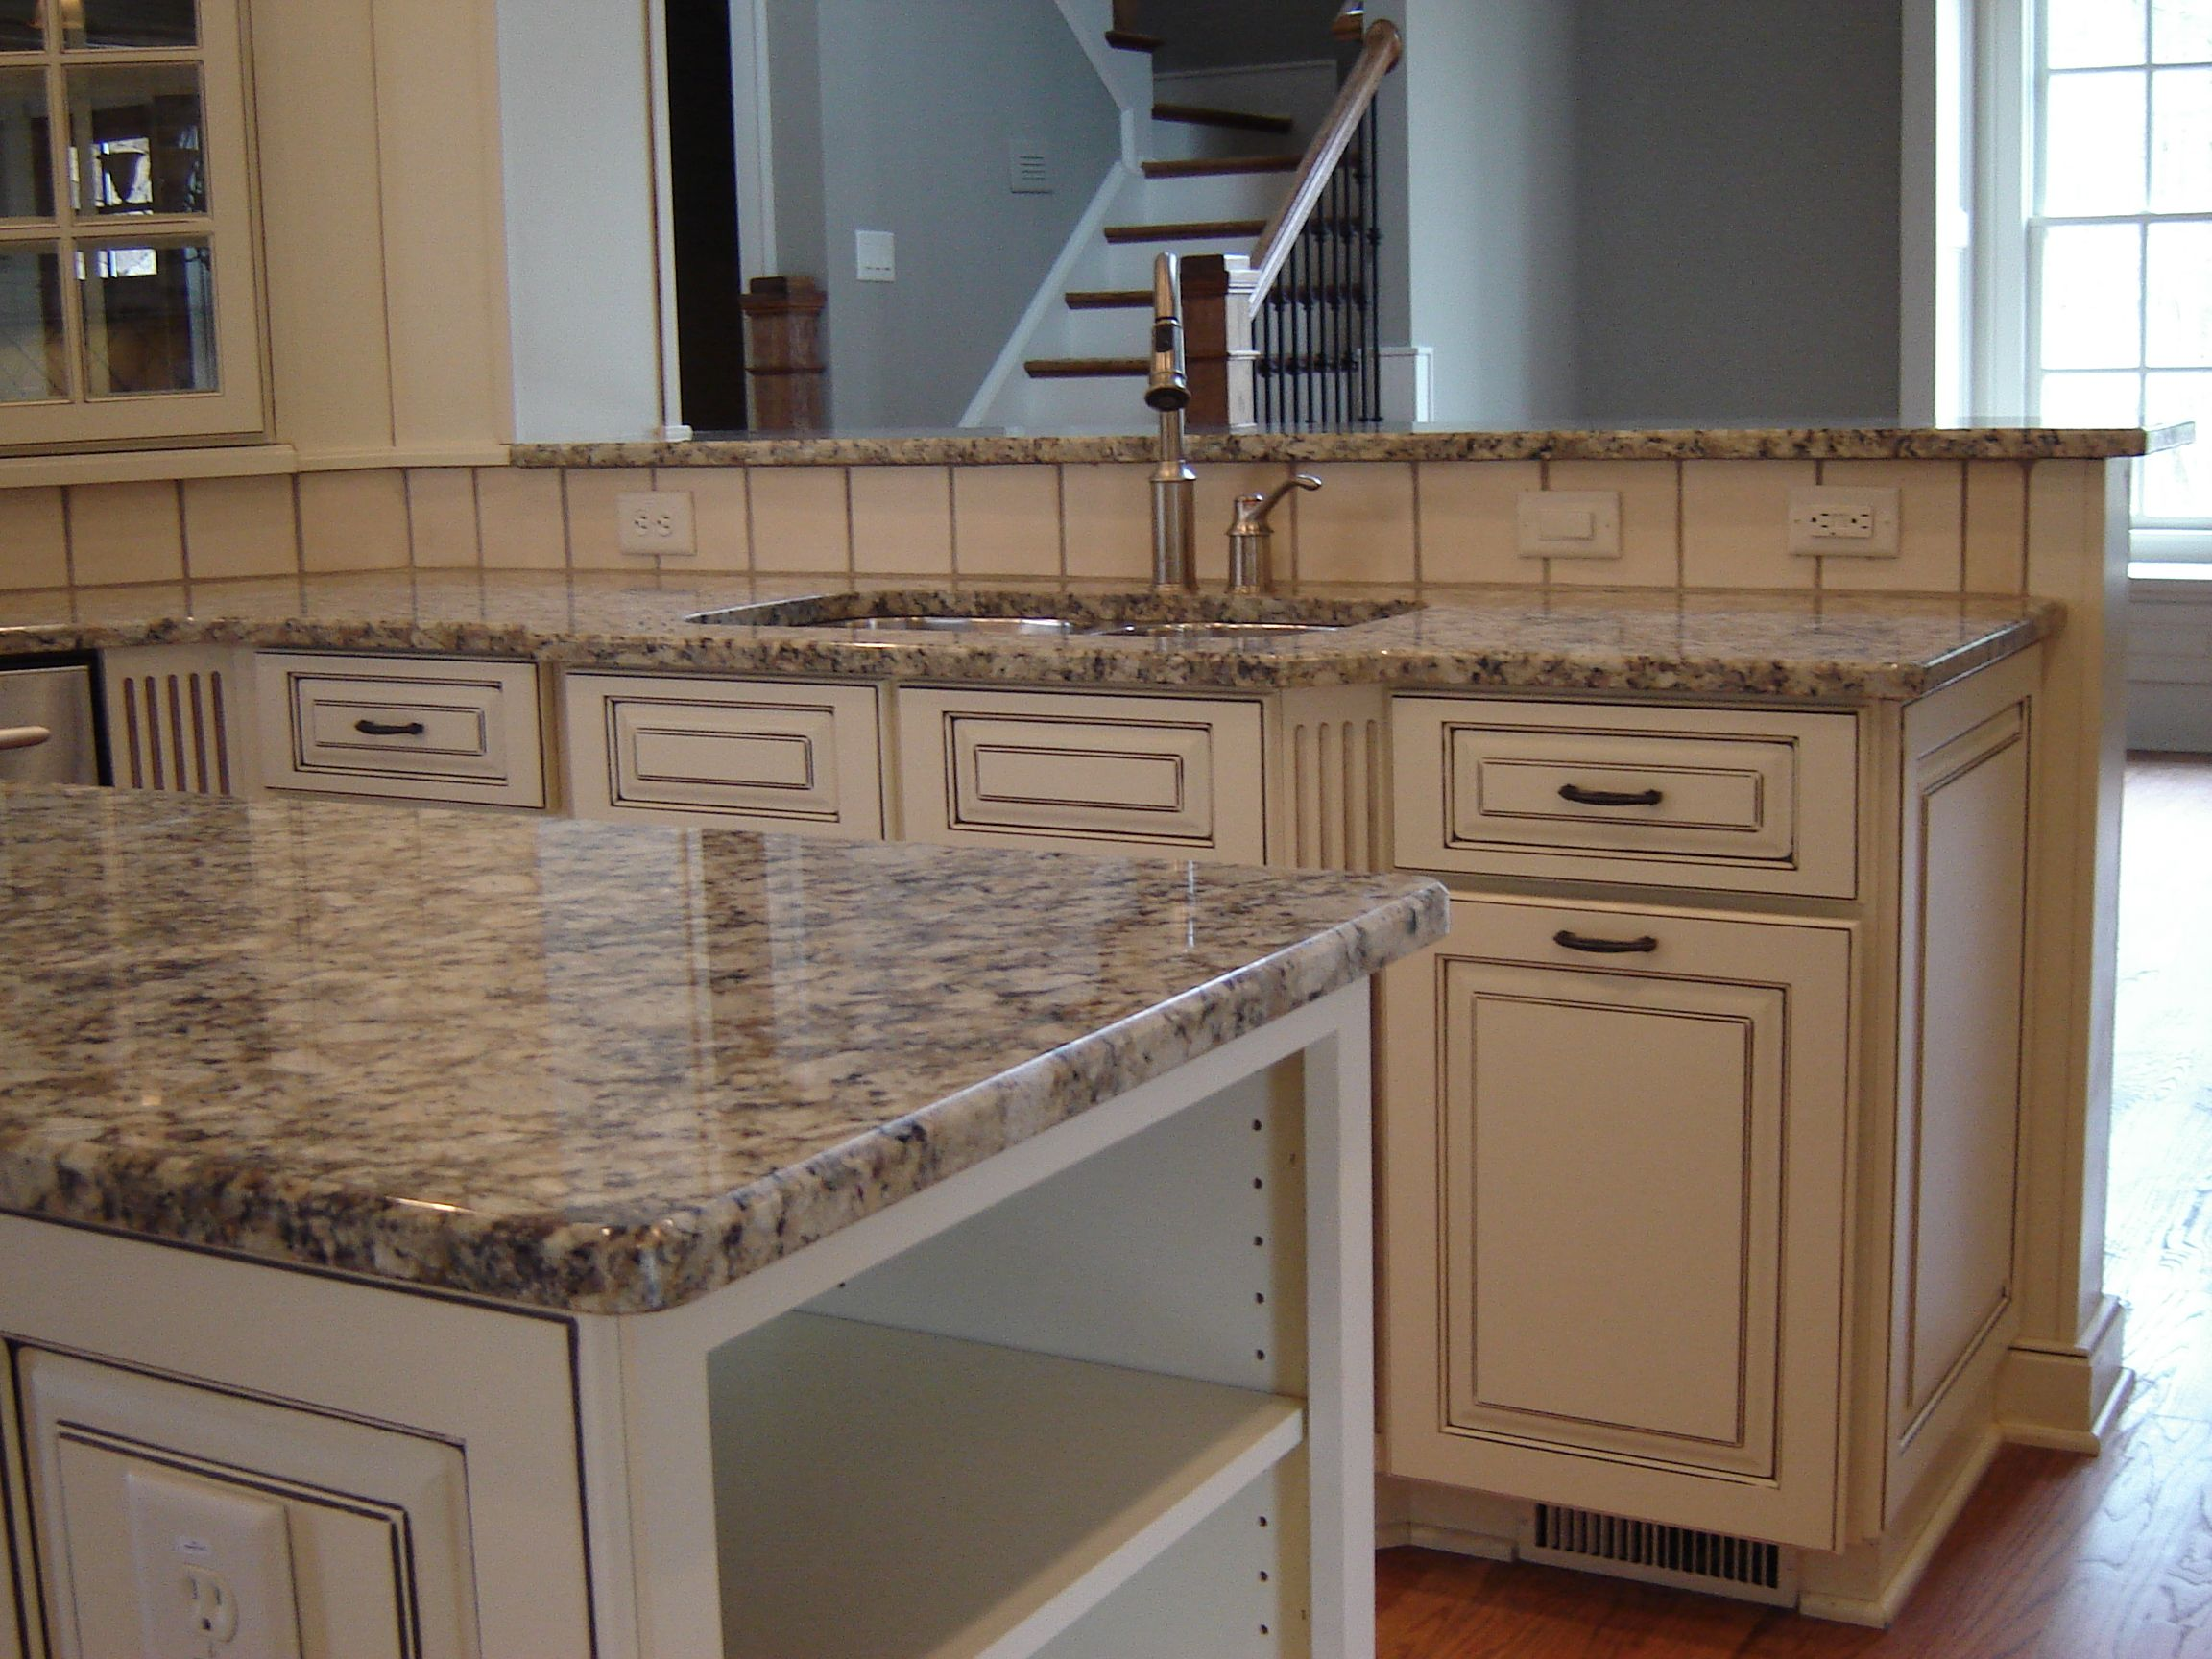 Kitchen cabinets to go atlanta - Dove White Cabinets With Taupe Glaze Gallo Napoleone Granite Counters Recent Project Atlanta